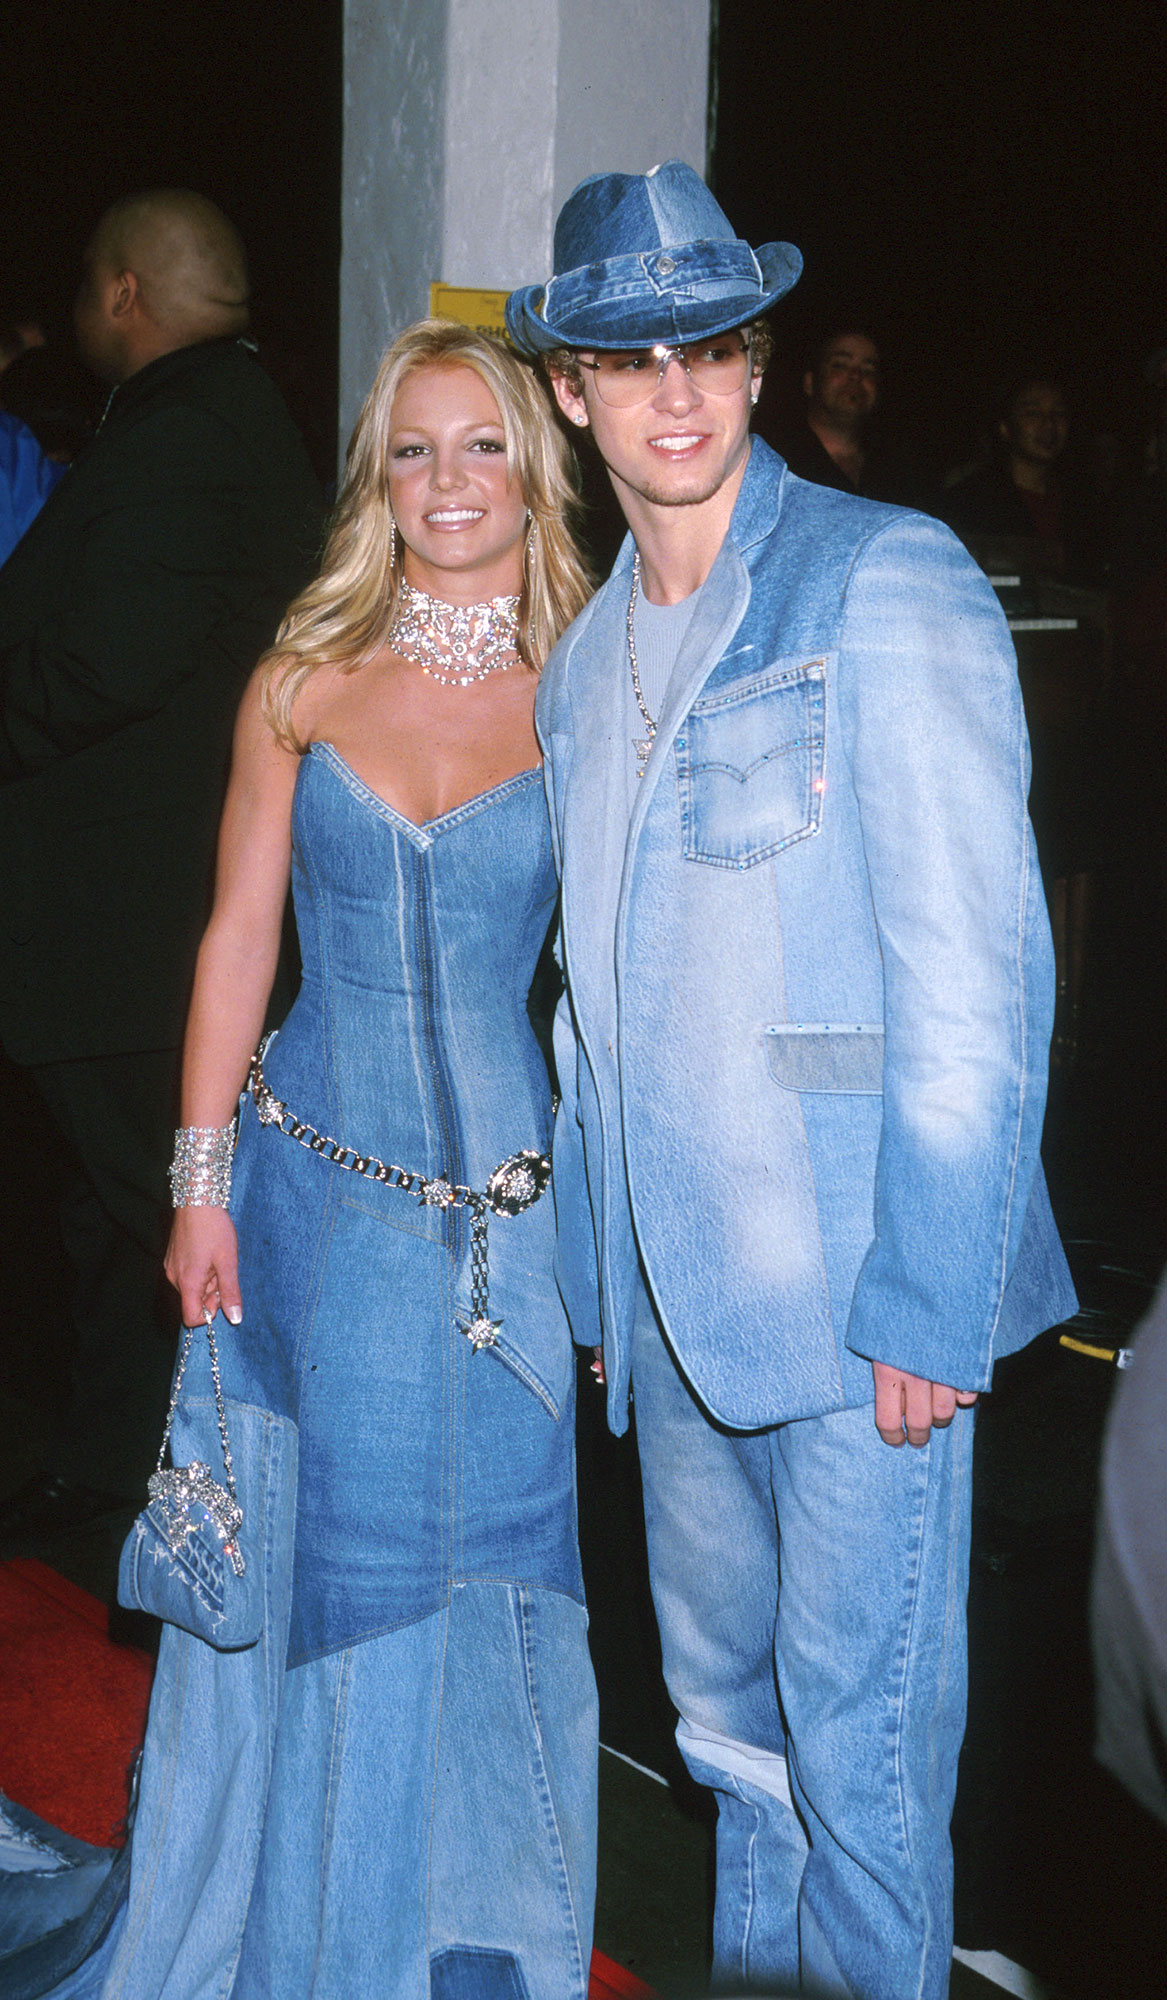 """Britney Spears' Ups and Downs gallery - Spears and Timberlake were Hollywood's hottest couple for nearly four years until the """"Lucky"""" singer reportedly strayed from the relationship. Timberlake went on to write his single""""Cry Me a River,"""" seemingly about Spears' infidelity, with a look-alike of the singer starring in the music video."""